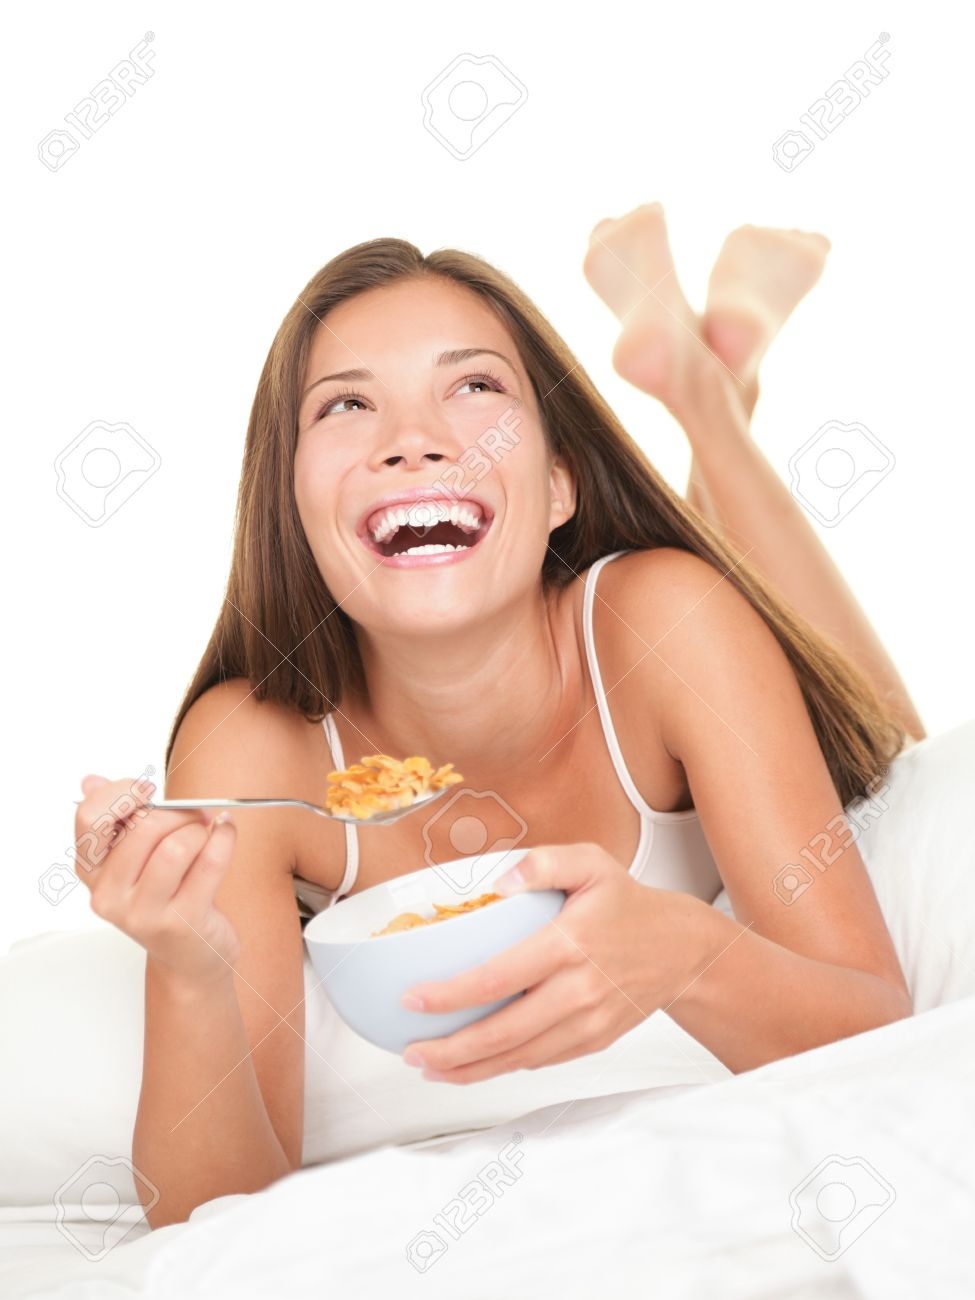 Woman eating breakfast in bed. Happy woman enjoying cornflakes cereals in the bed in the morning. Beautiful mixed race Chinese Asian / Caucasian female model lying in bed isolated on white background. Stock Photo - 7439163